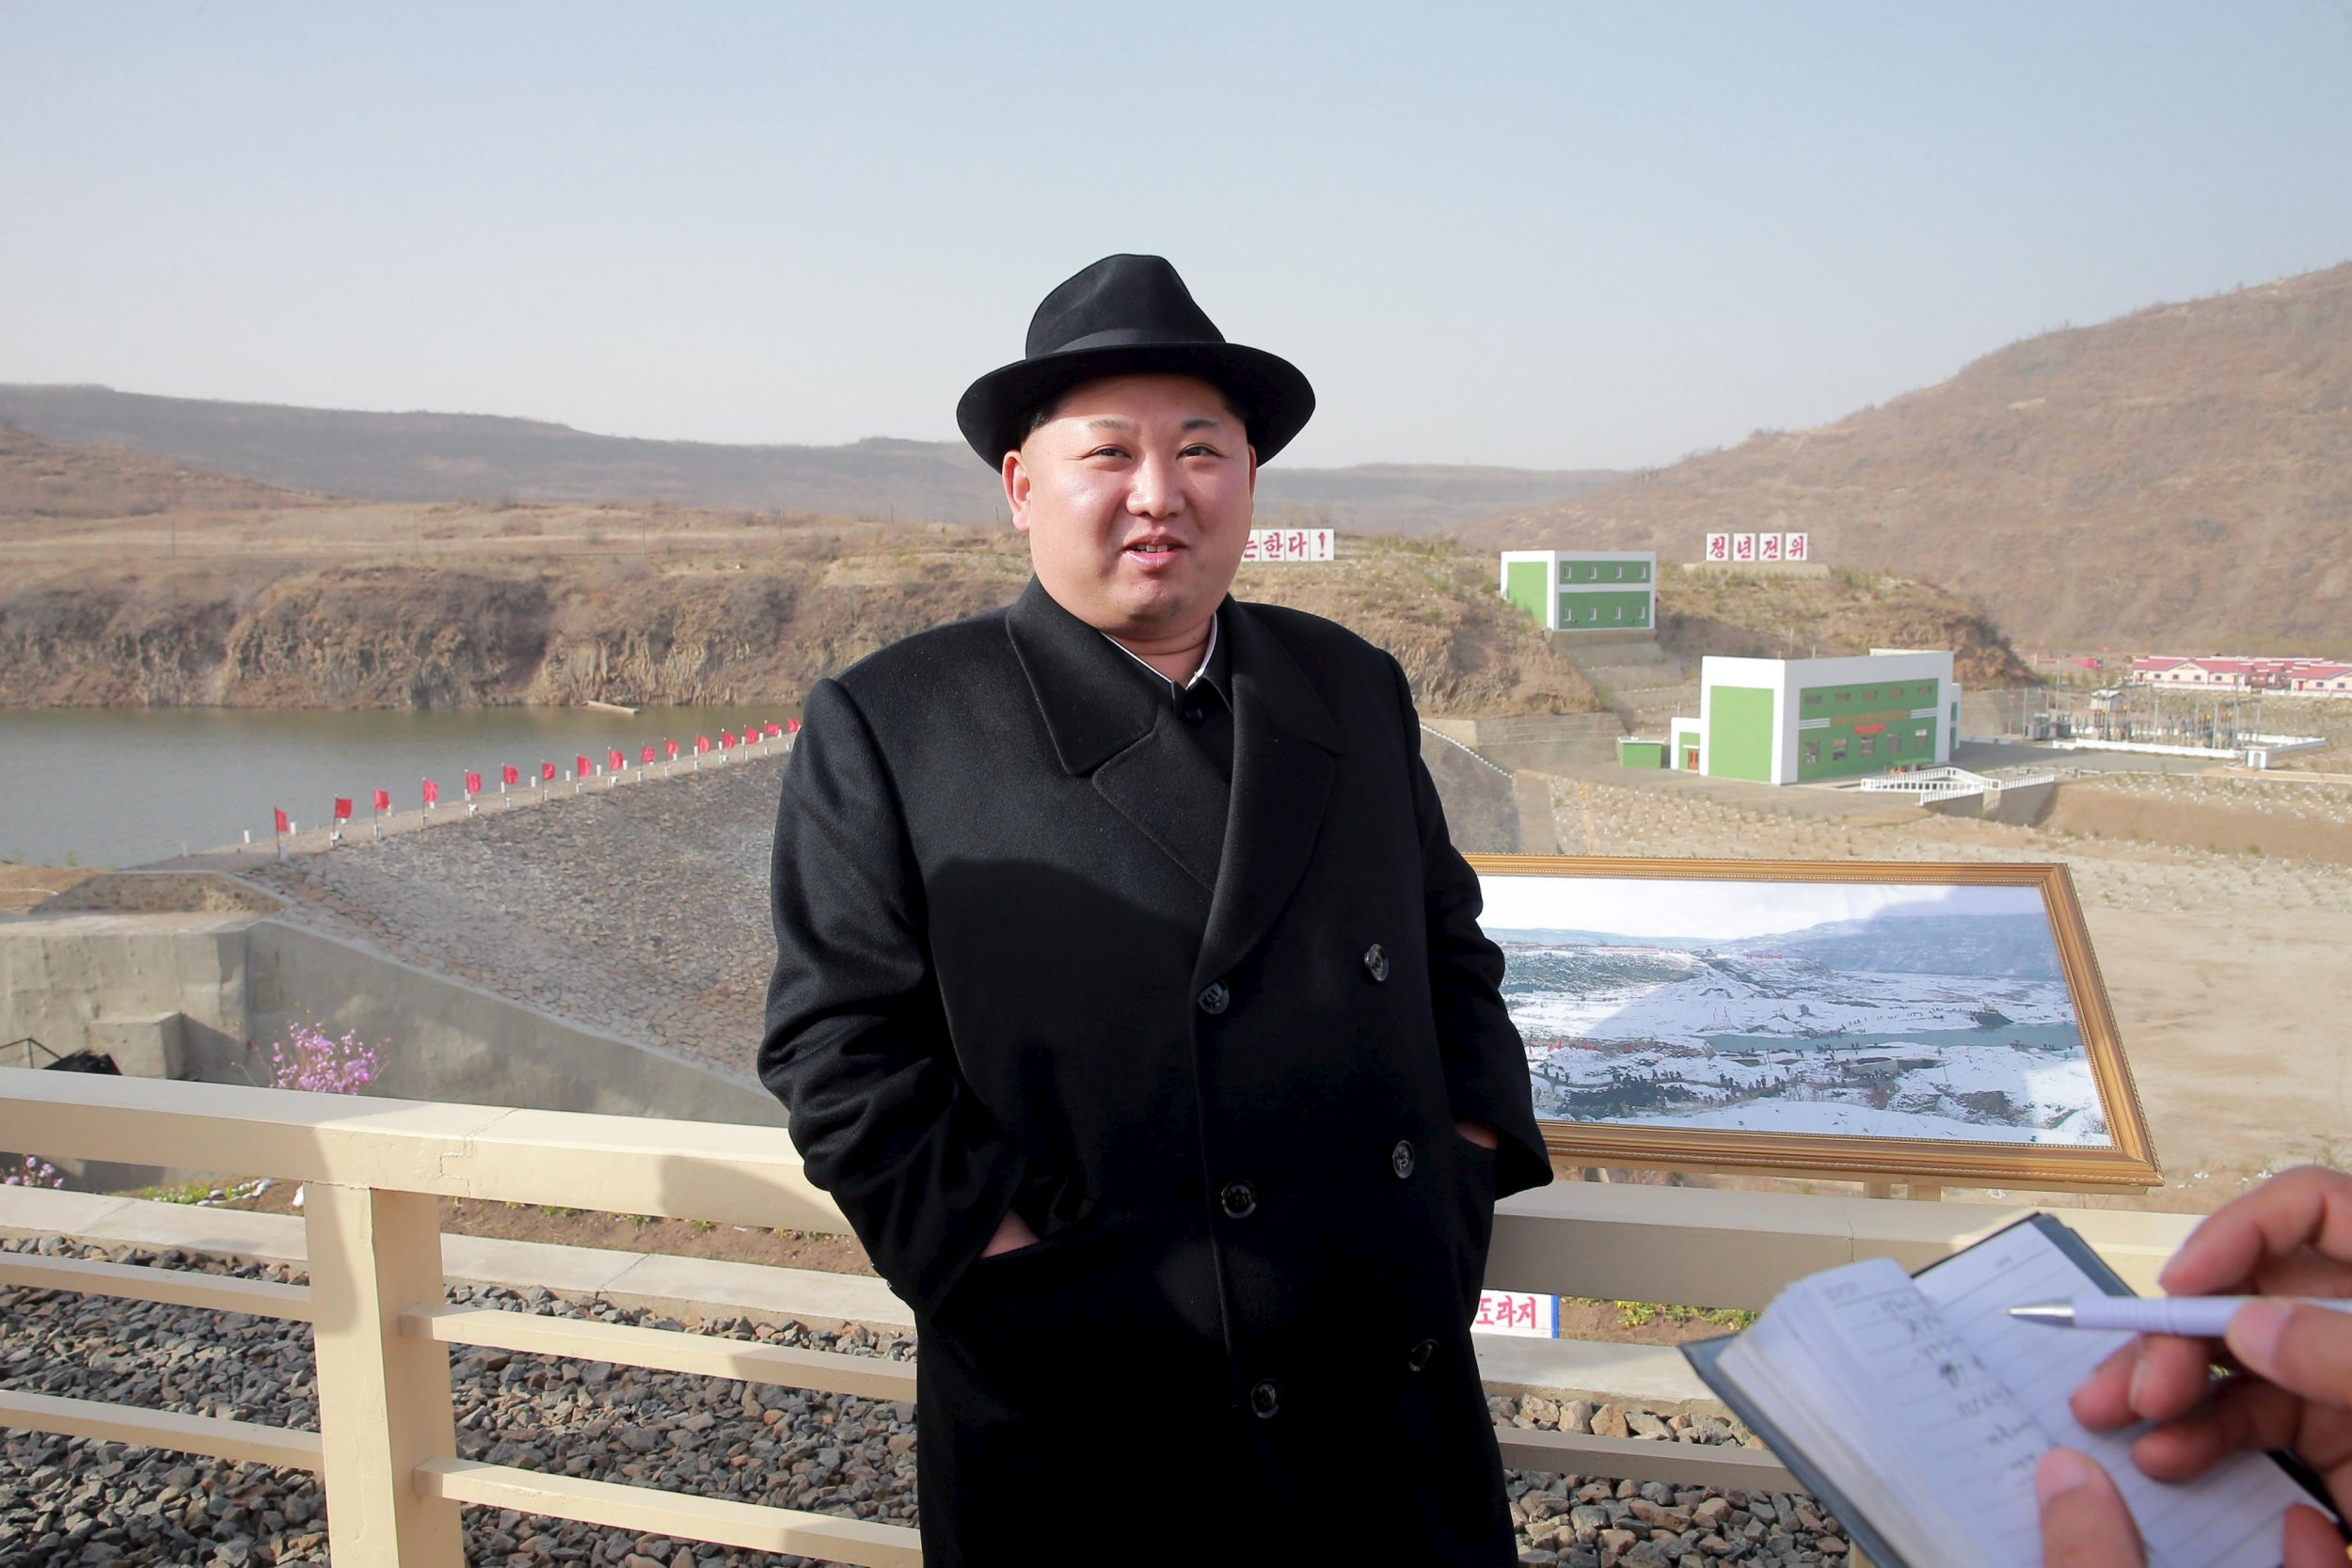 North Korean leader Kim Jong Un visits the Paektusan Hero Youth Power Station No. 3 in this undated photo released by North Korea's Korean Central News Agency (KCNA) in Pyongyang on April 23, 2016. KCNA/via REUTERS. ATTENTION EDITORS - THIS IMAGE WAS PROVIDED BY A THIRD PARTY. EDITORIAL USE ONLY. REUTERS IS UNABLE TO INDEPENDENTLY VERIFY THIS IMAGE. SOUTH KOREA OUT. TPX IMAGES OF THE DAY